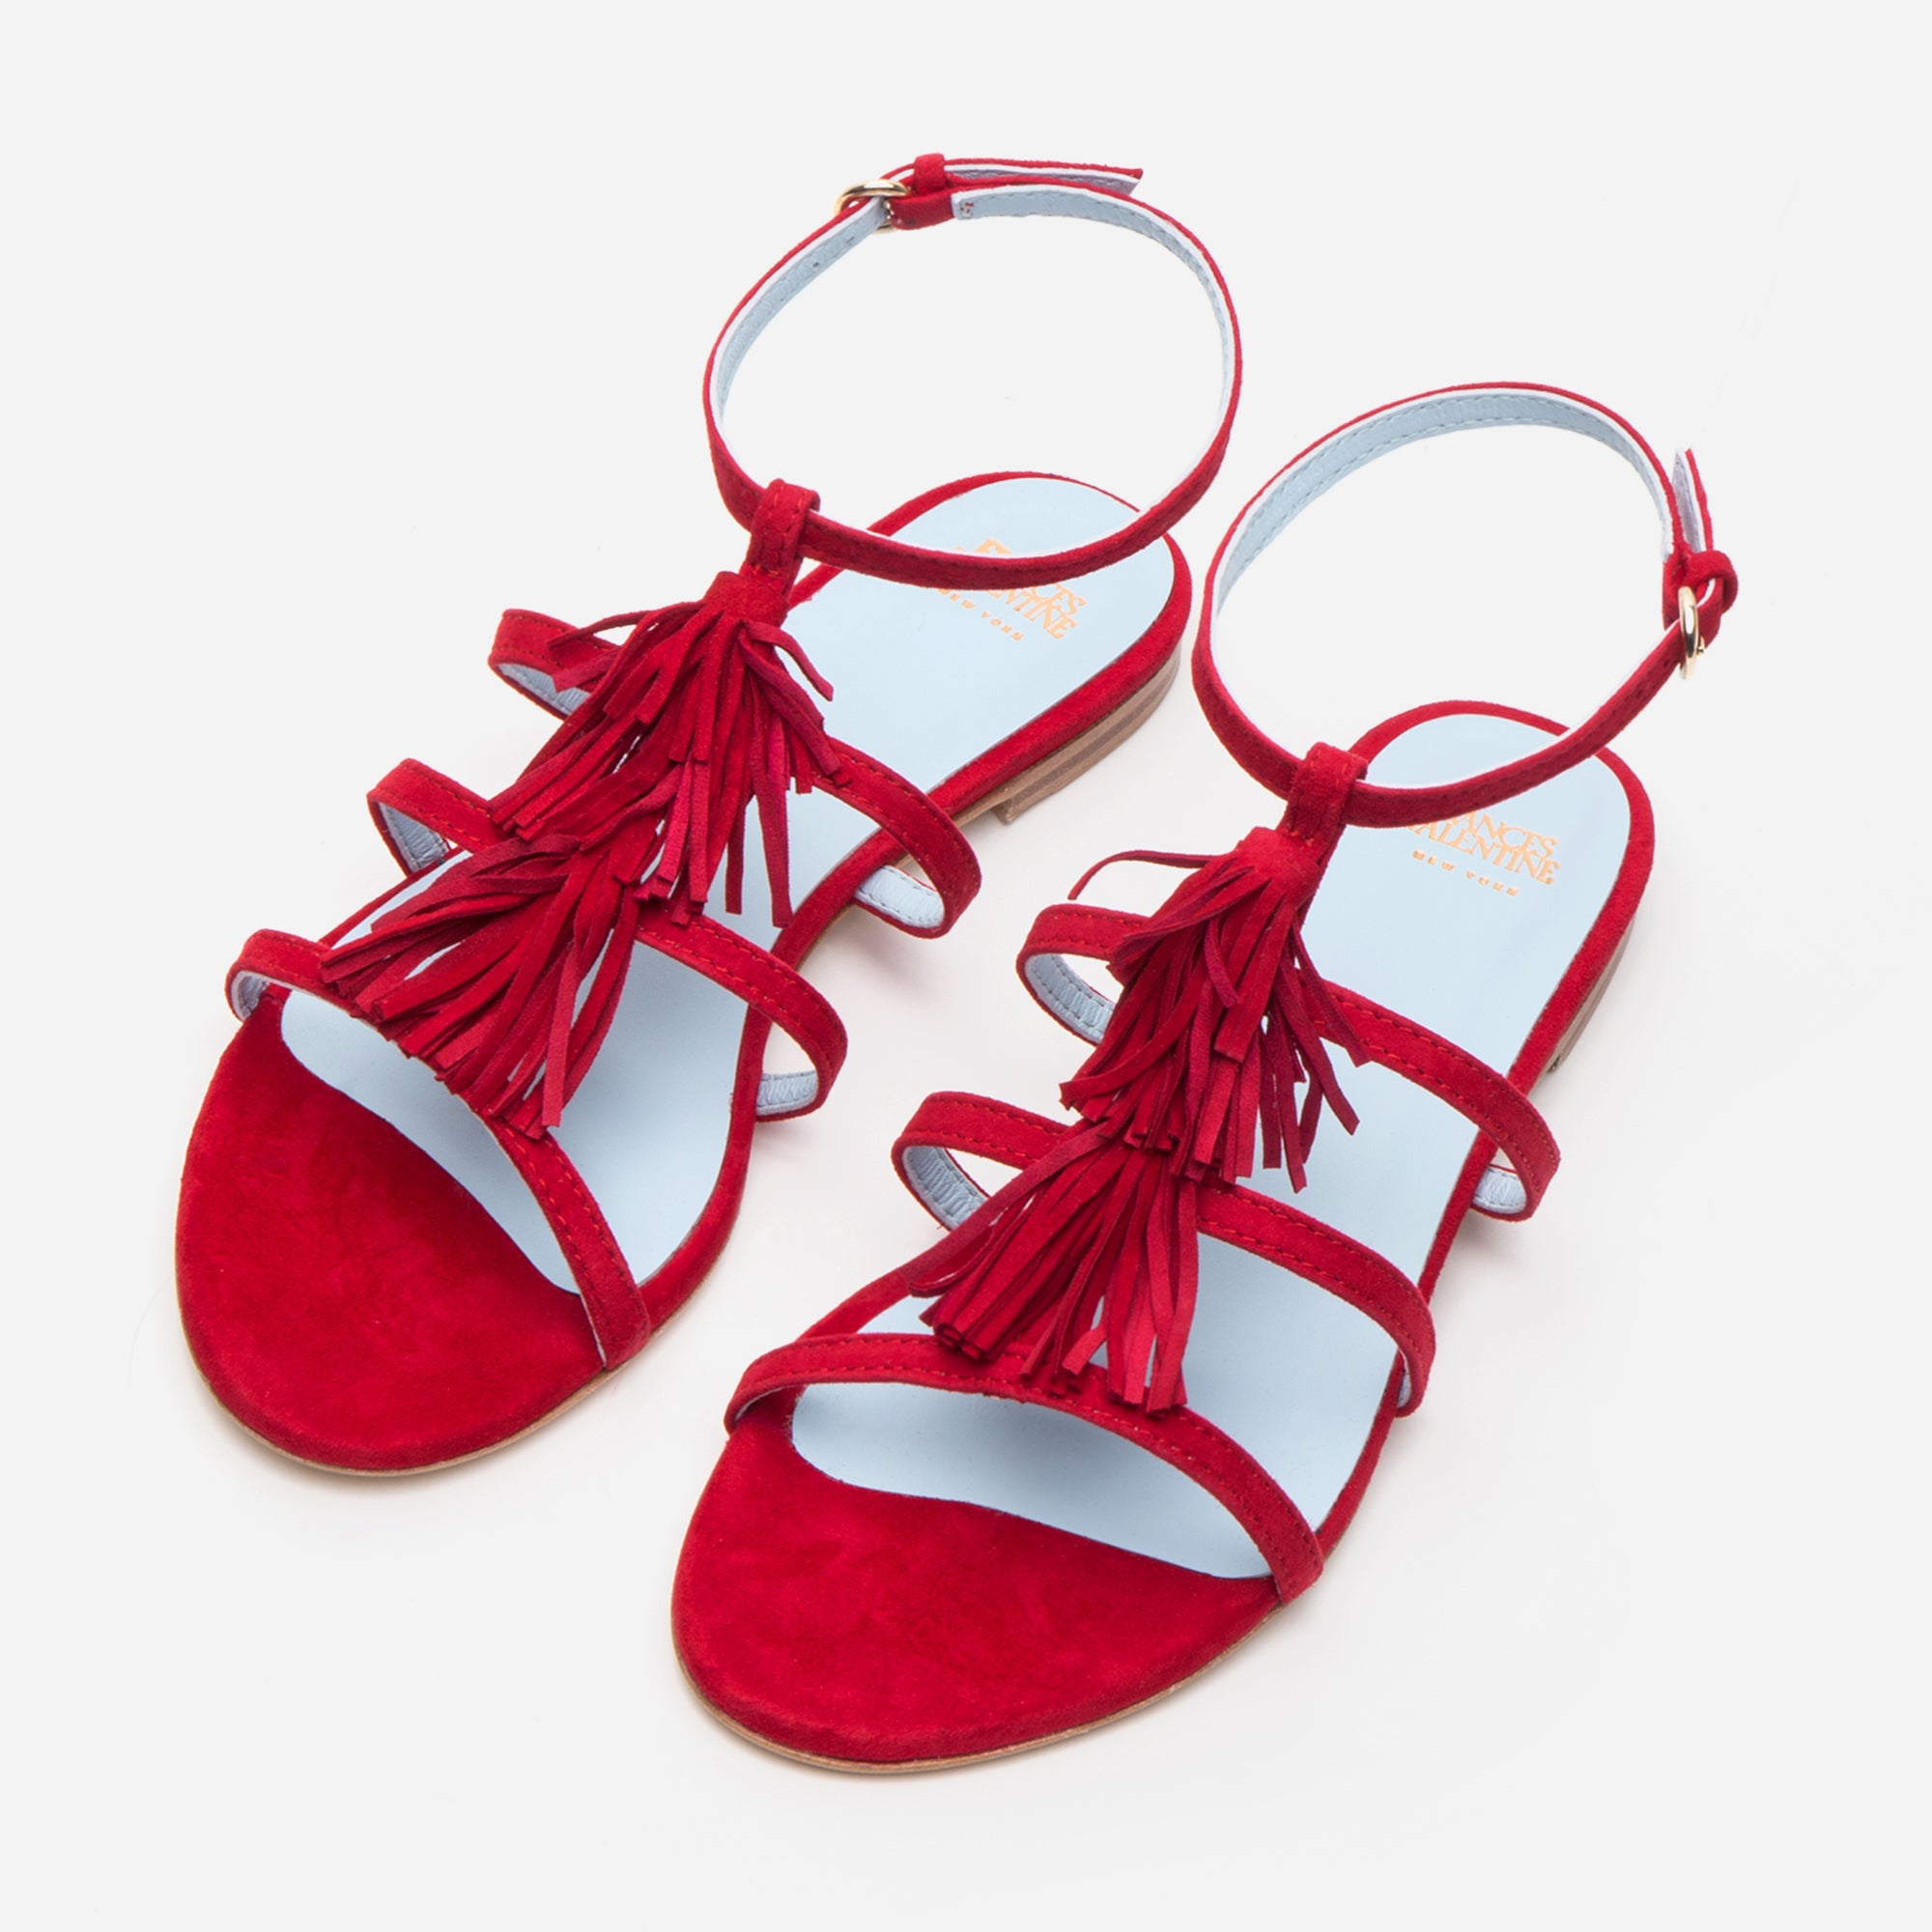 Mia Suede Fringe Sandals Red